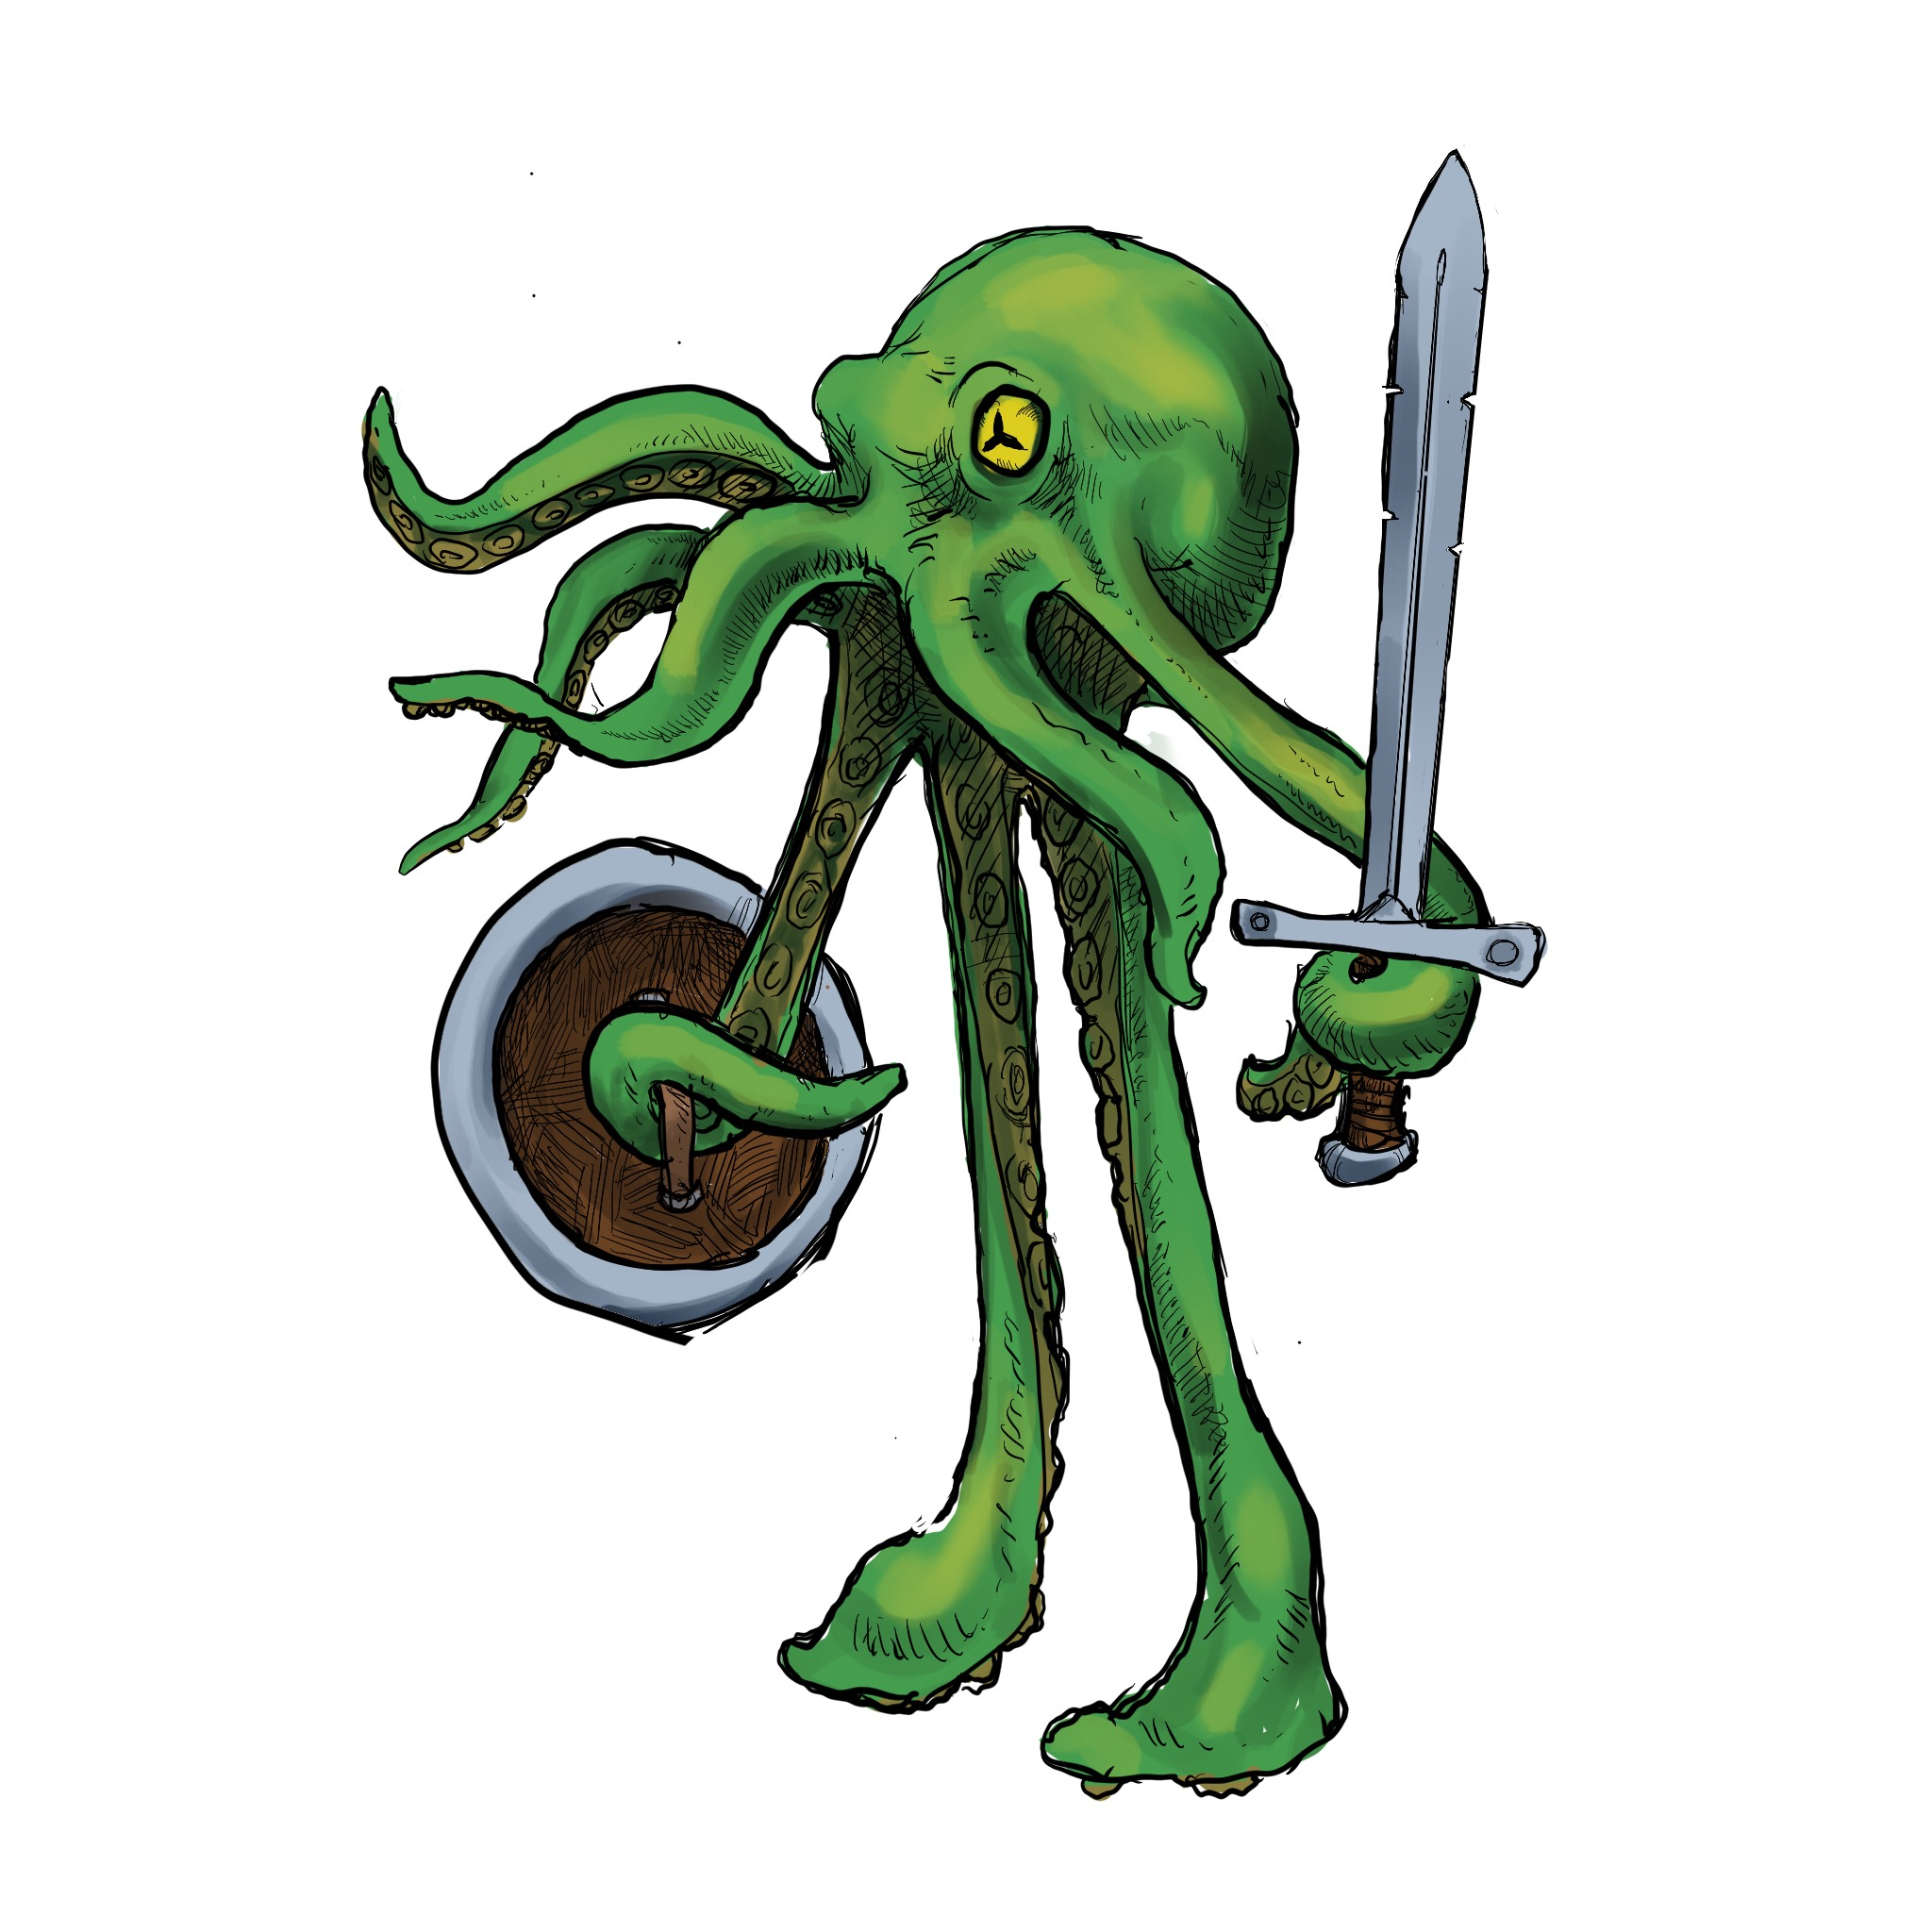 a walking octopus with sword and shield